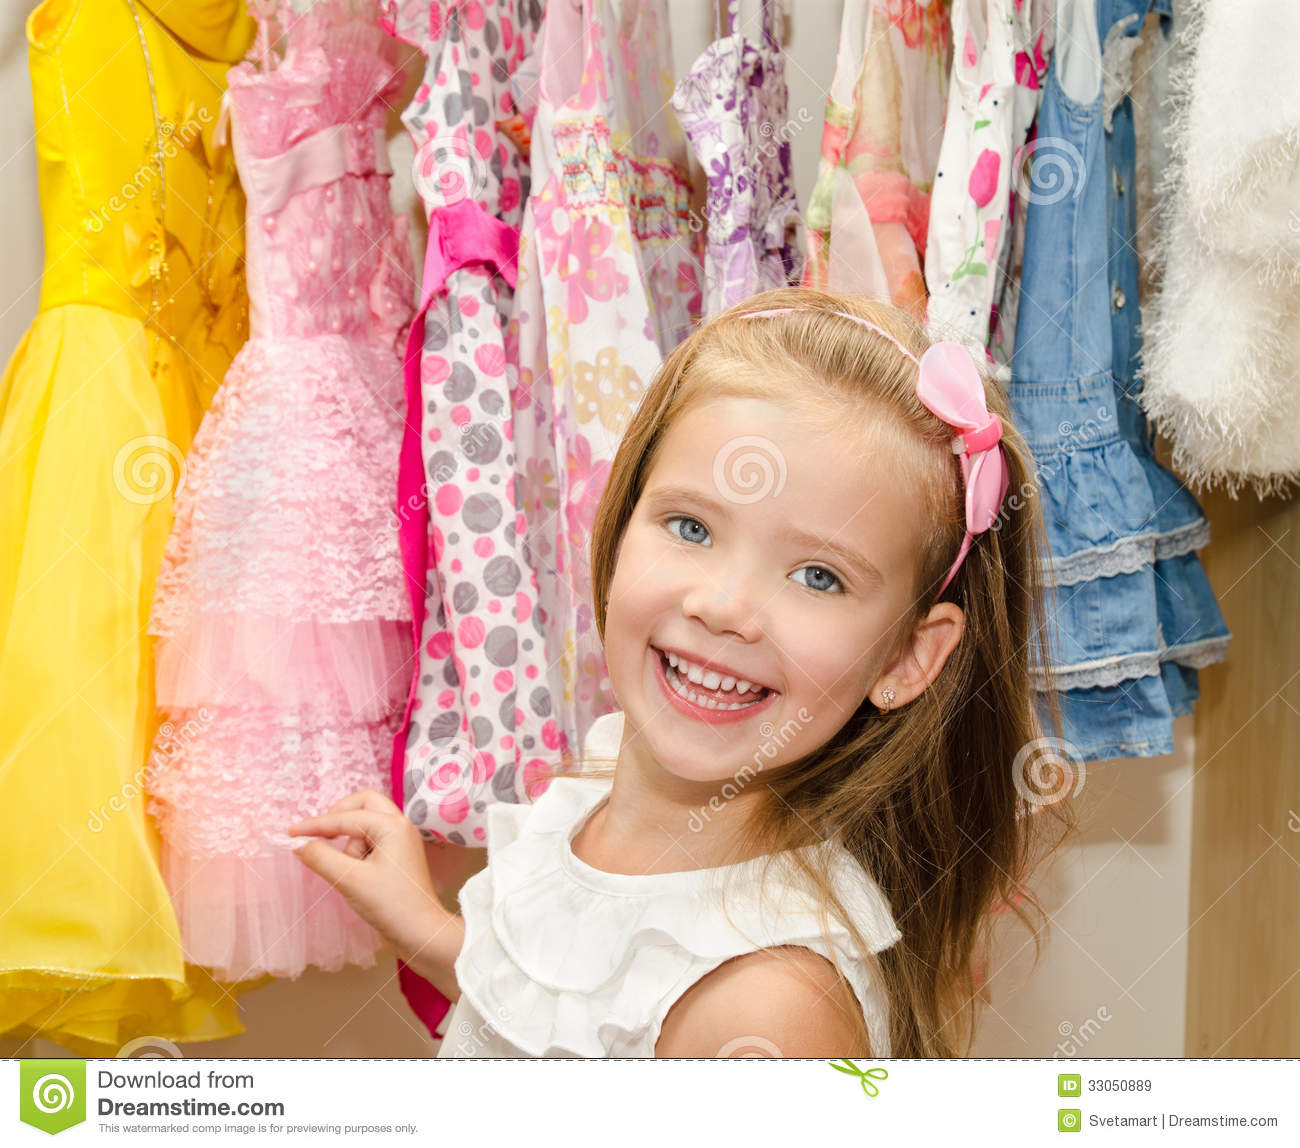 dd4631010 Smiling Little Girl Chooses A Dress From The Wardrobe Stock Image ...